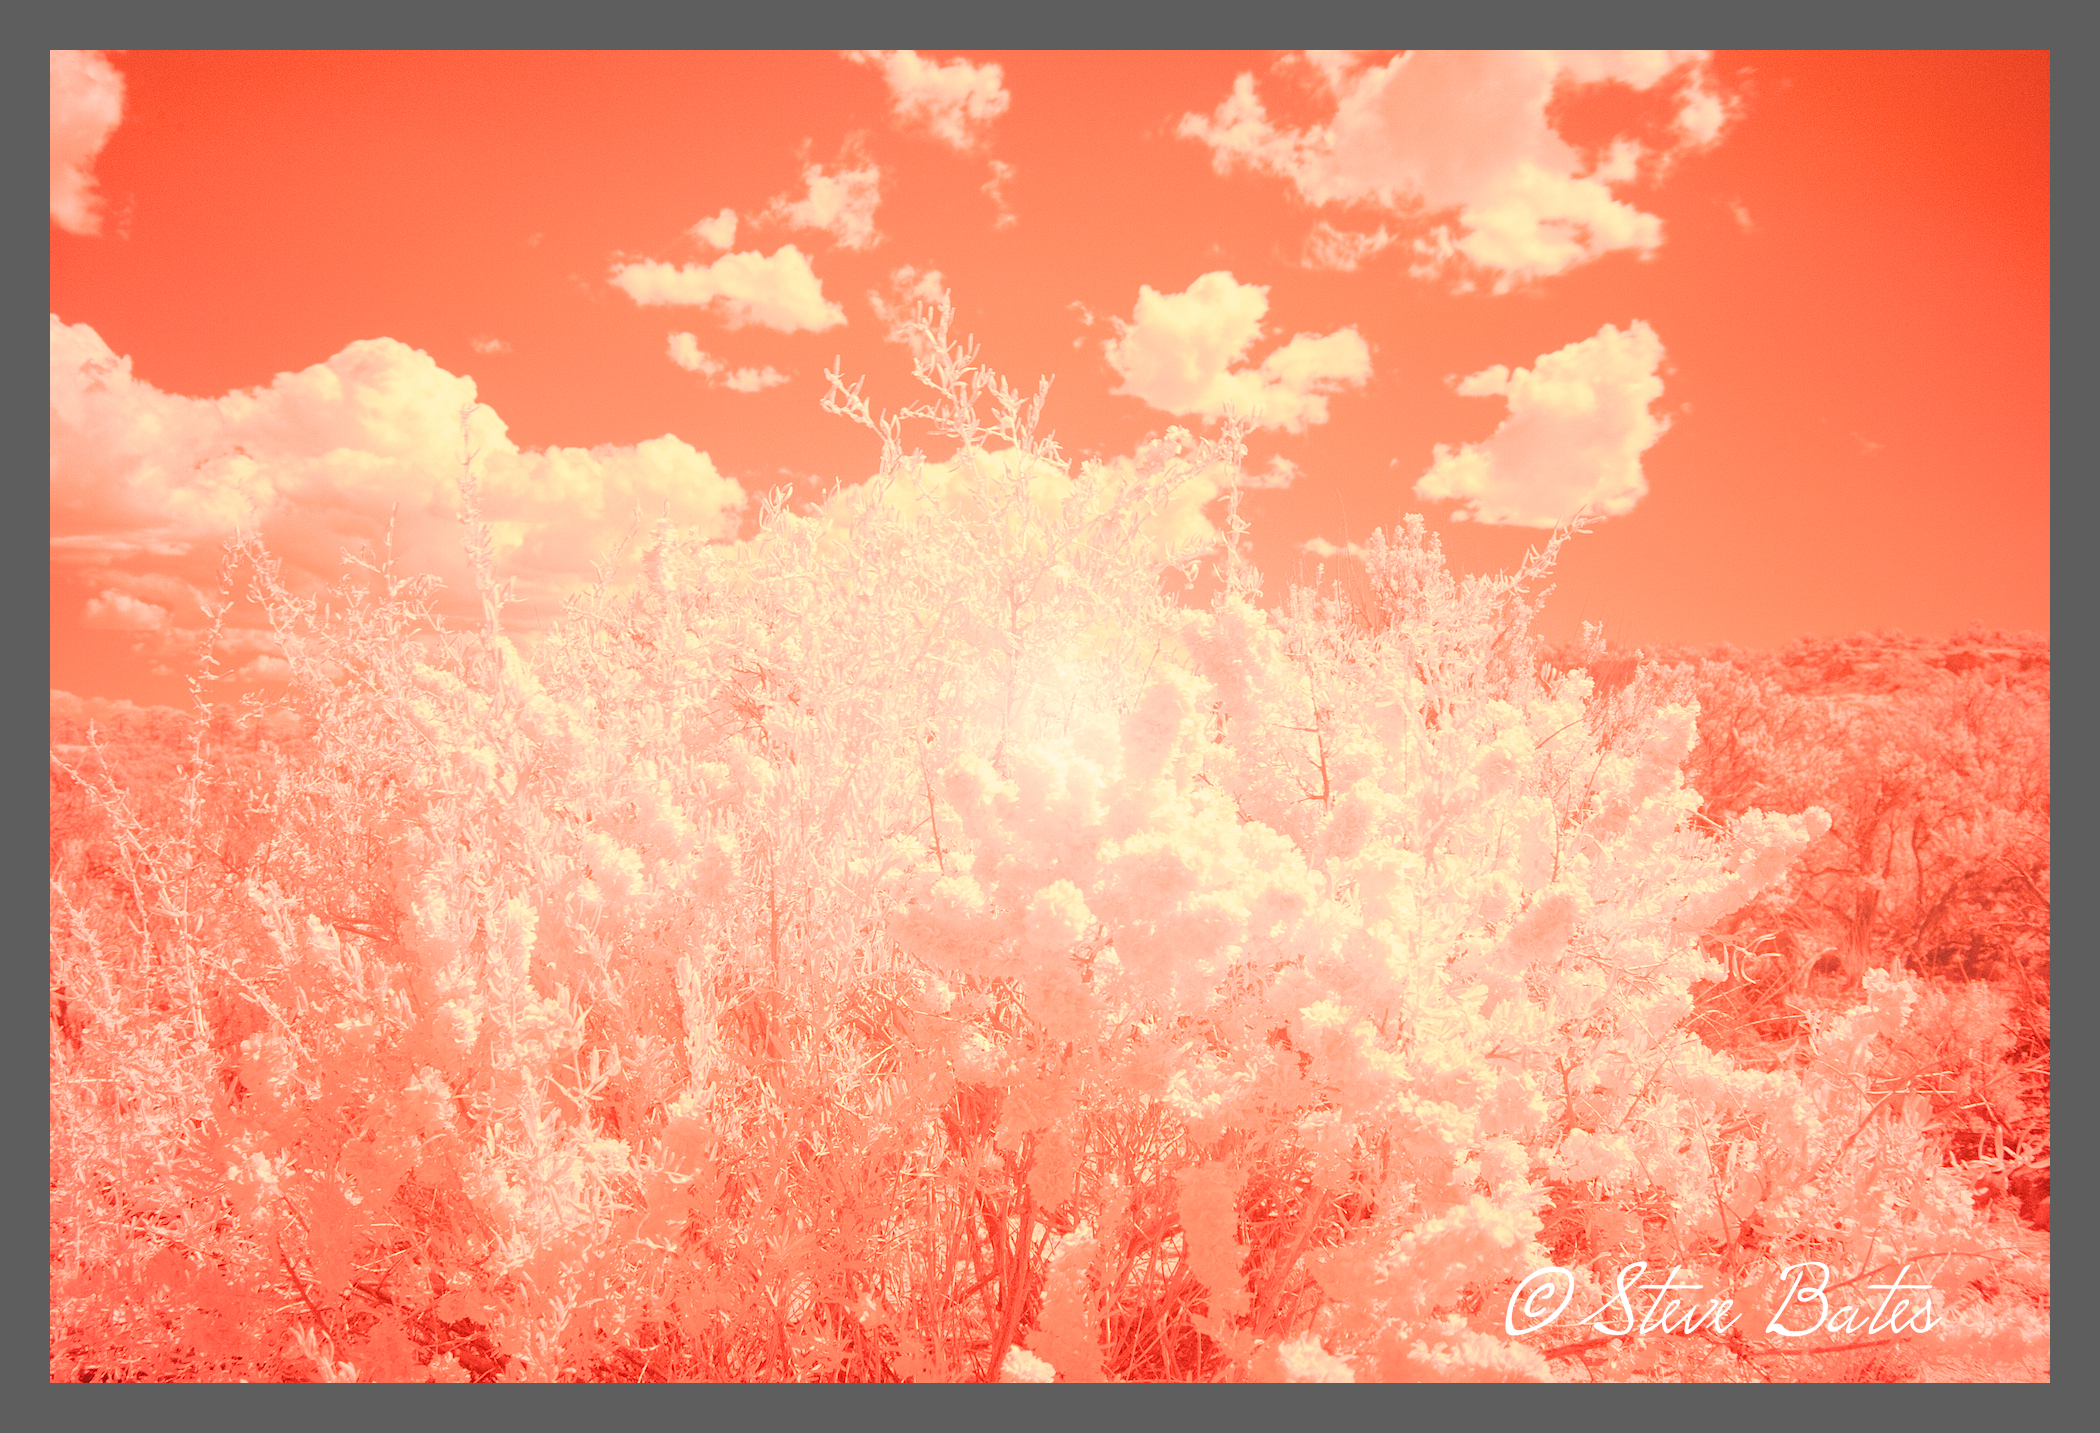 Processed image below. His preview on the camera is this red color. It takes practice to imagine, then, how the image will appear when fully processed.